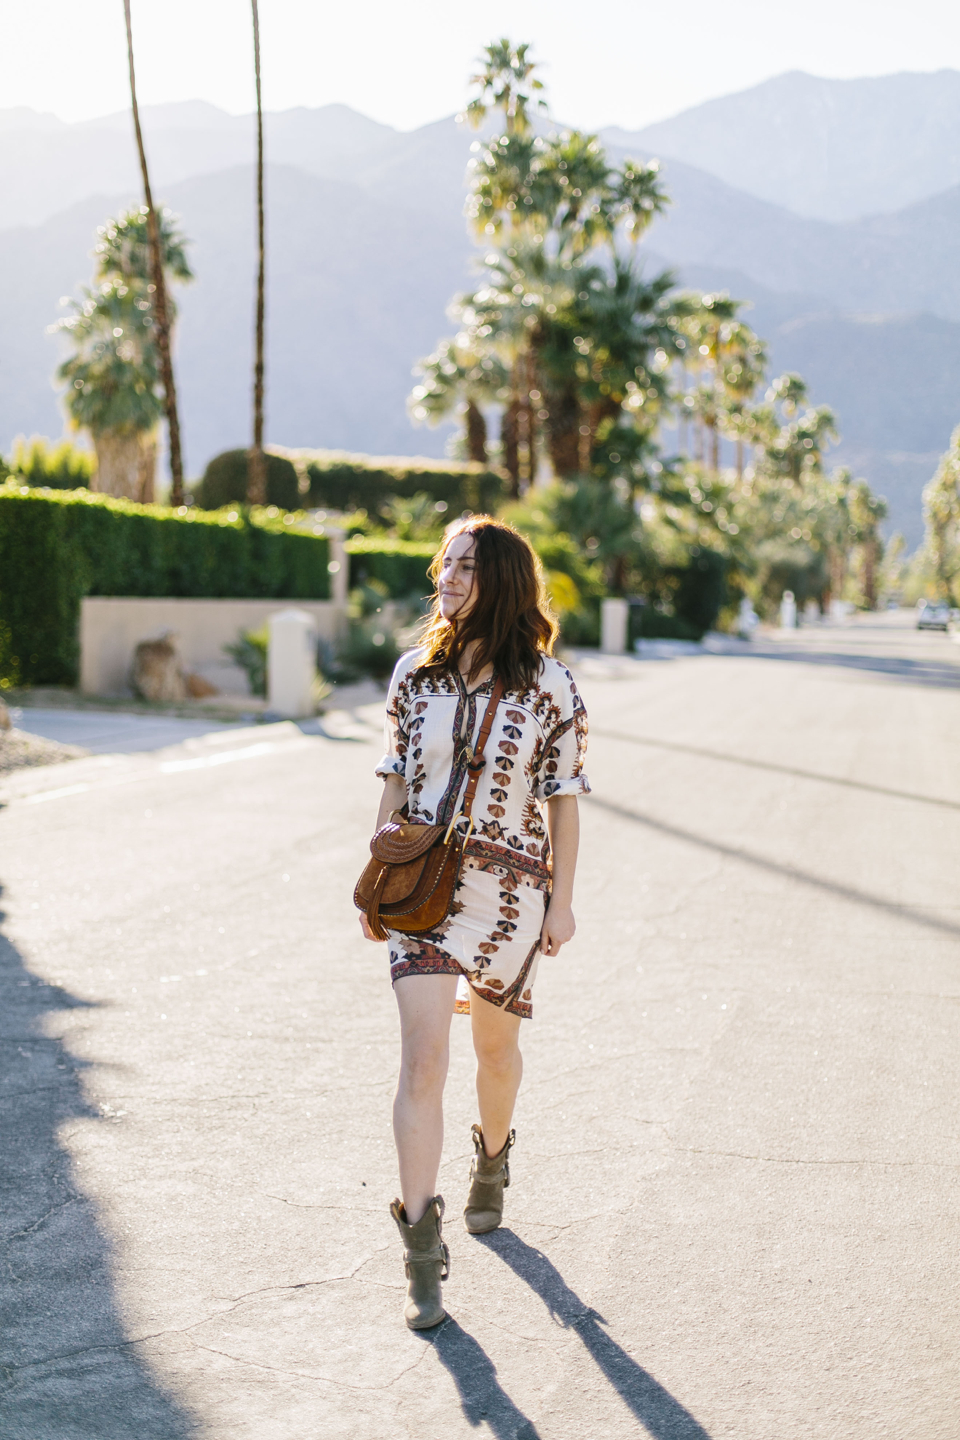 The Best Ways to Wear Boots Before It Gets Chilly (Isabel Marant Flowy Tunic Shirtdress and Booties)